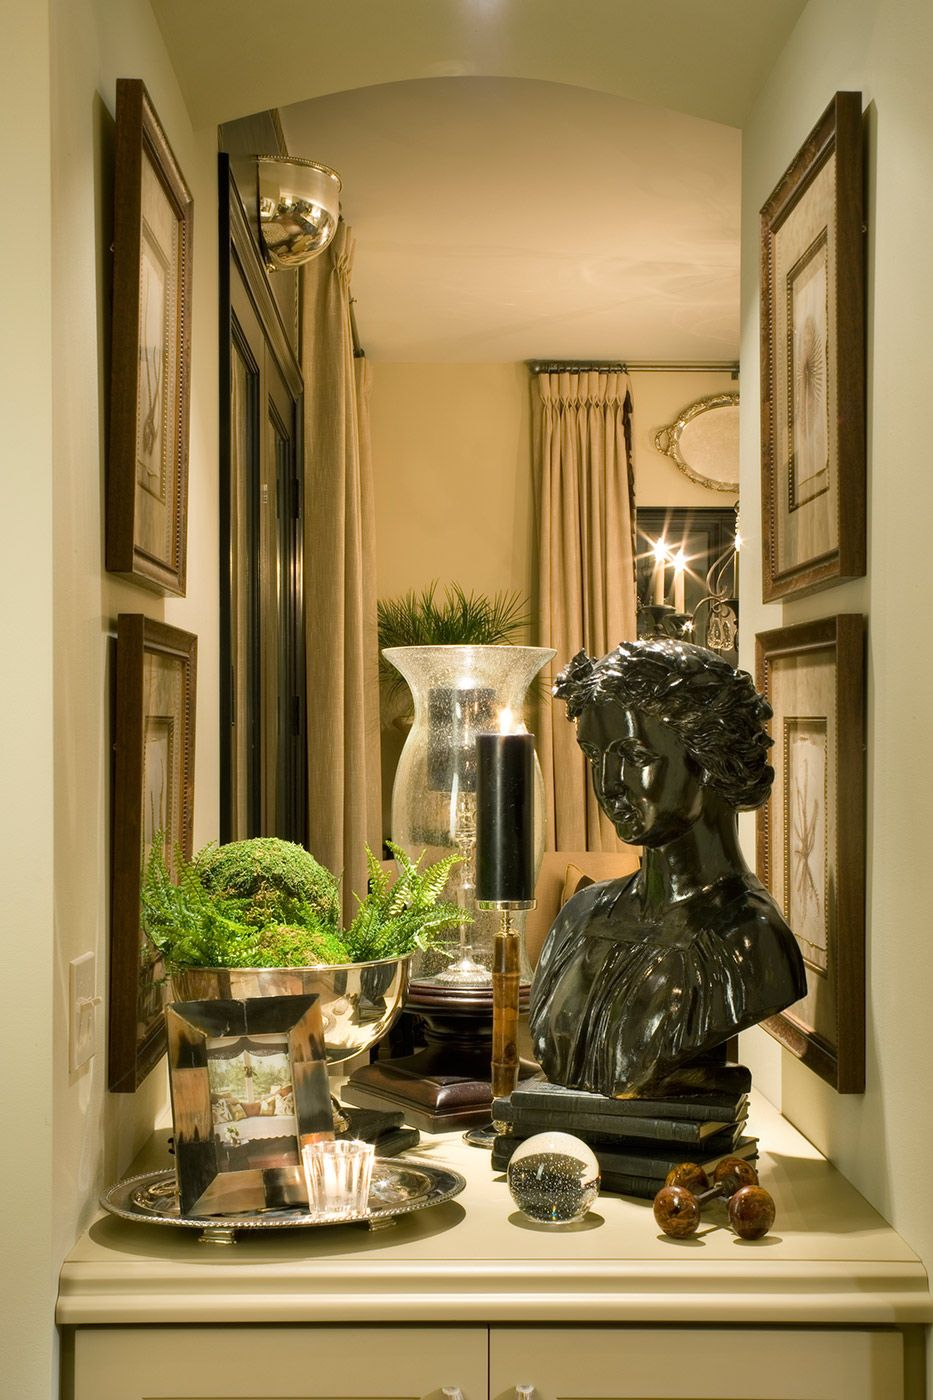 best images about accessorize on pinterest home sheds and foyers